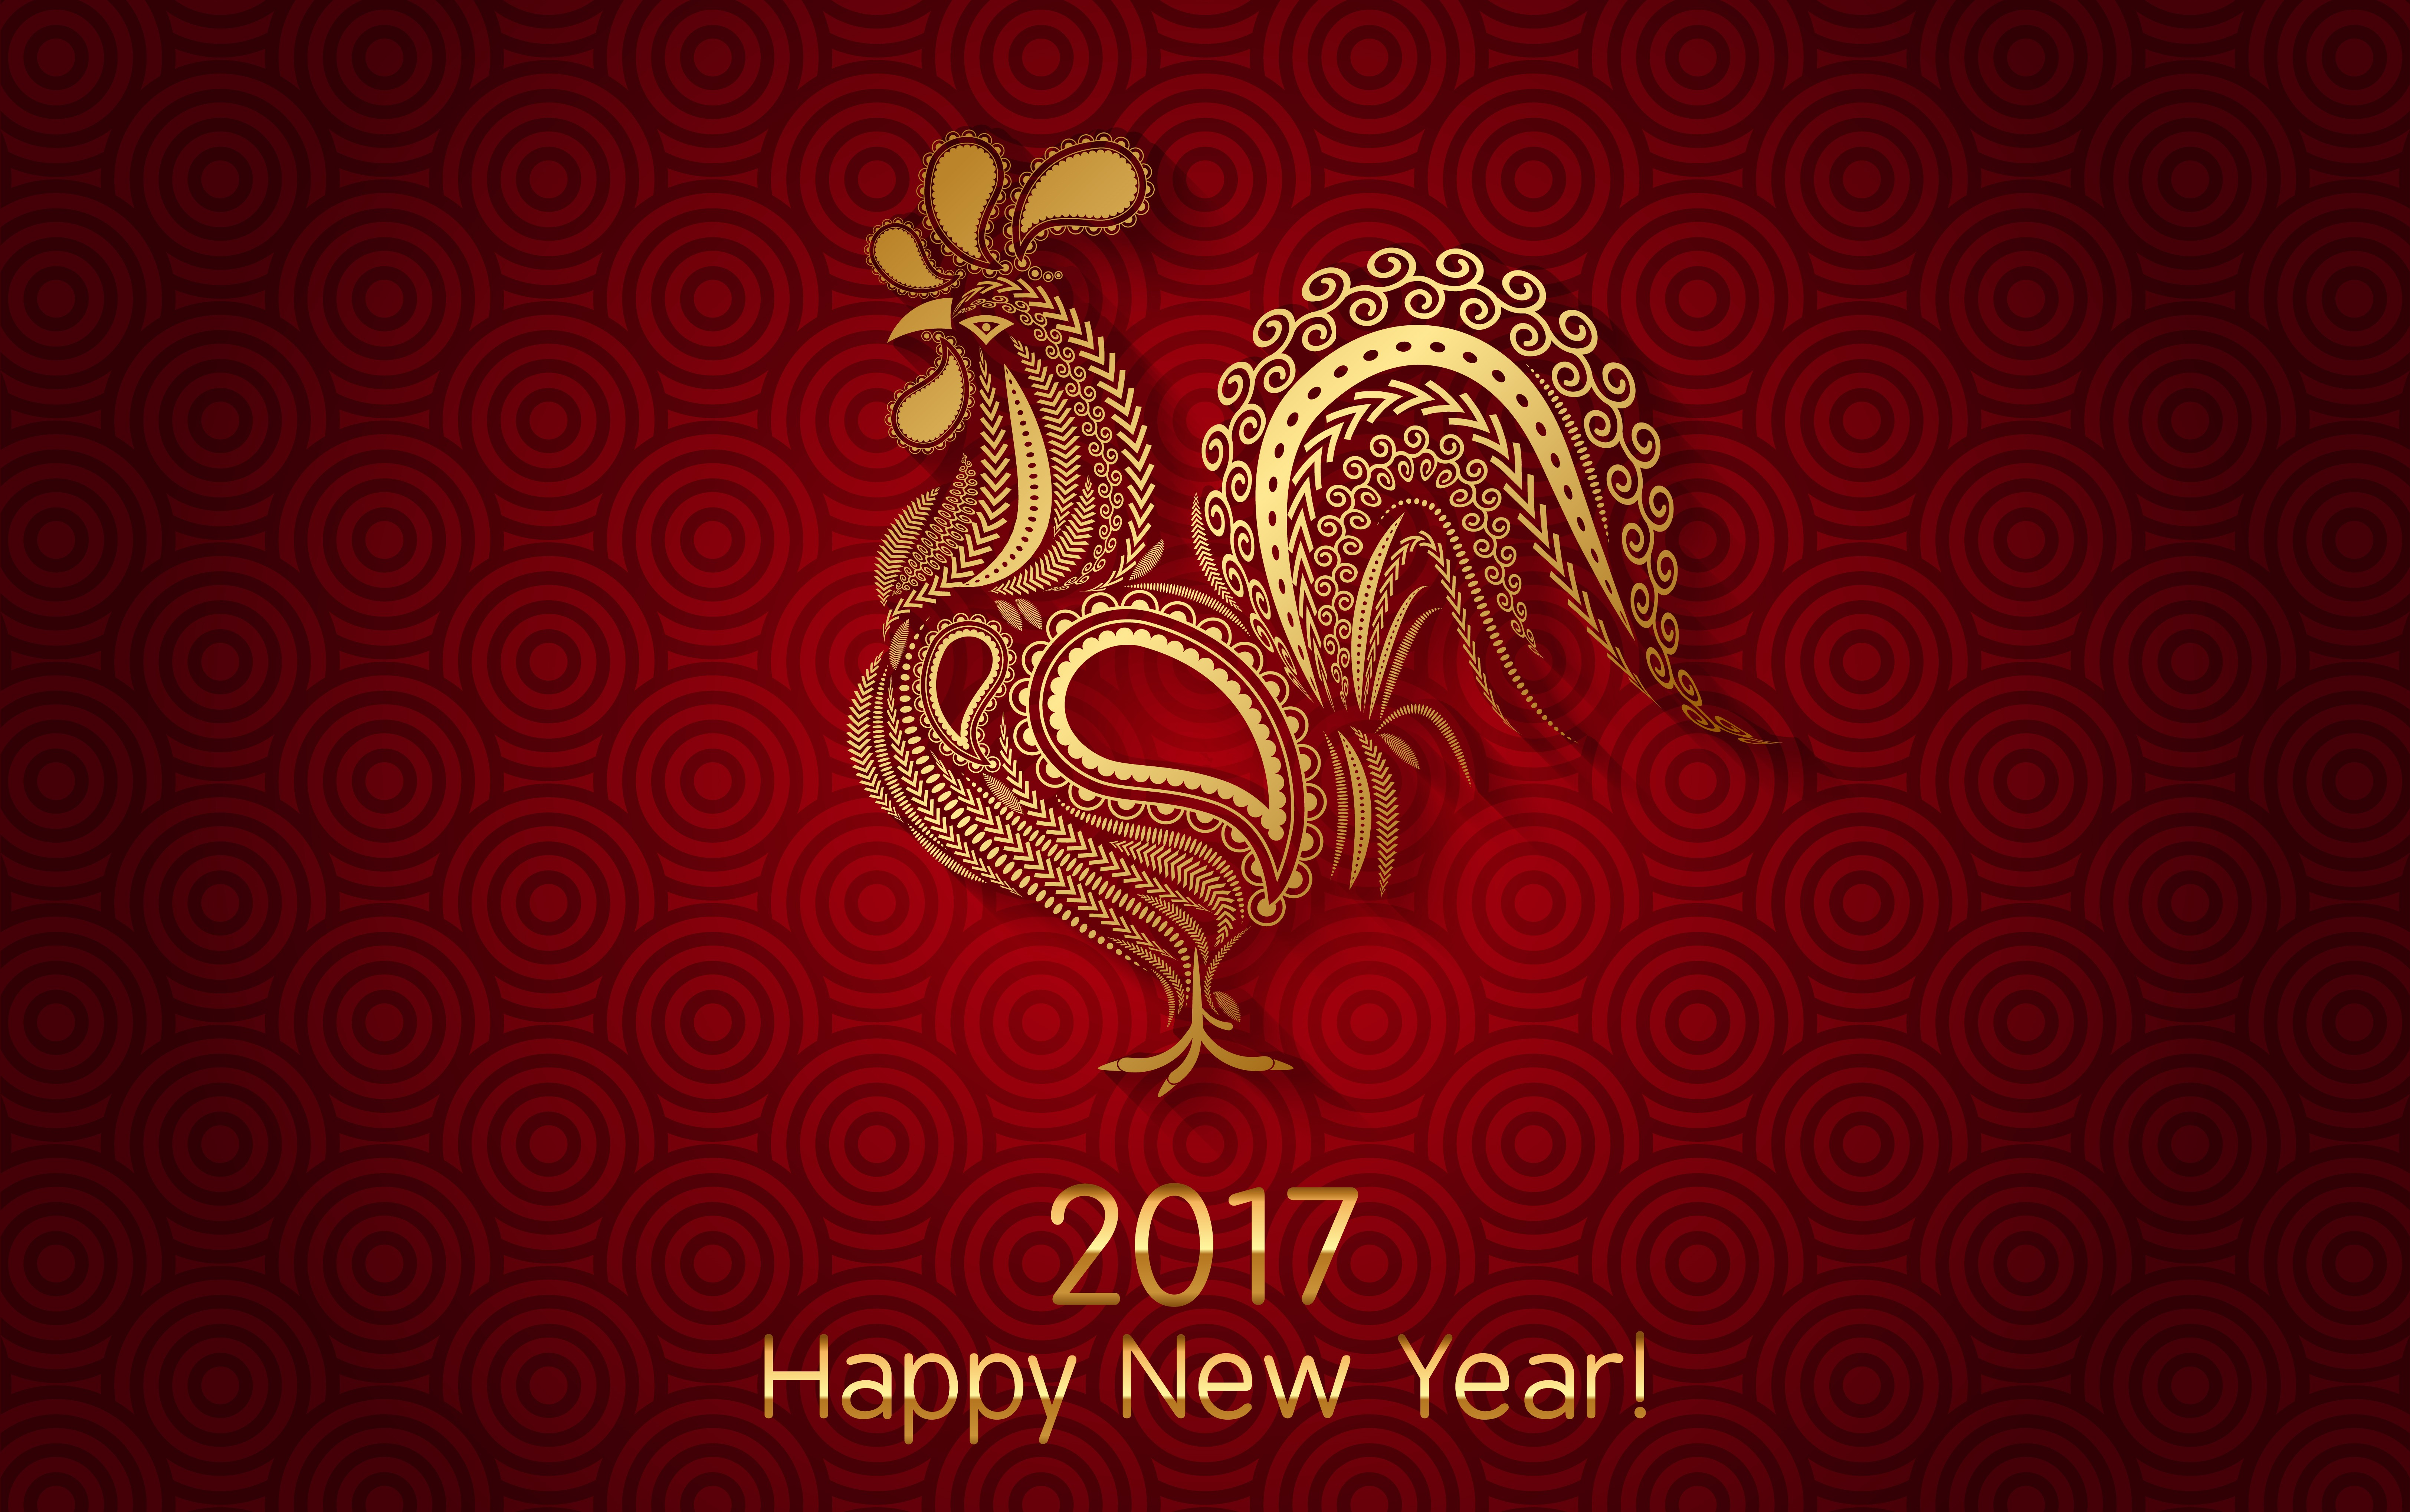 Chinese New Year 2017 The Year Of The Rooster